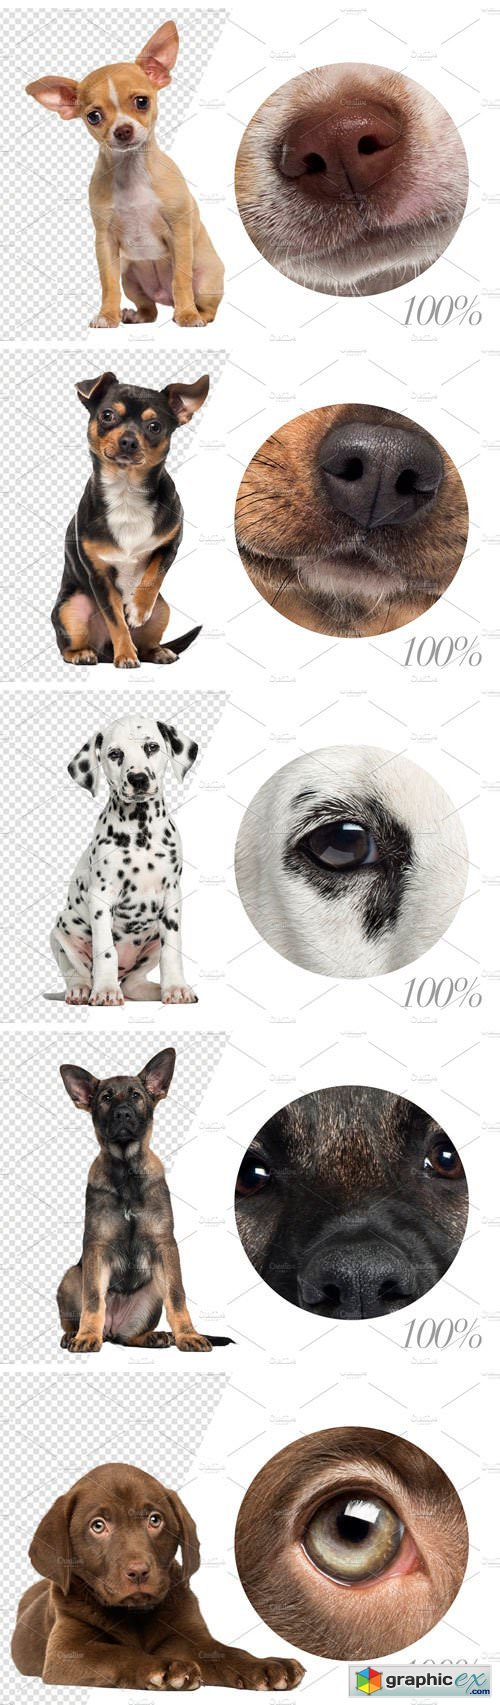 100 Dogs Bundle - Cut-out Pictures